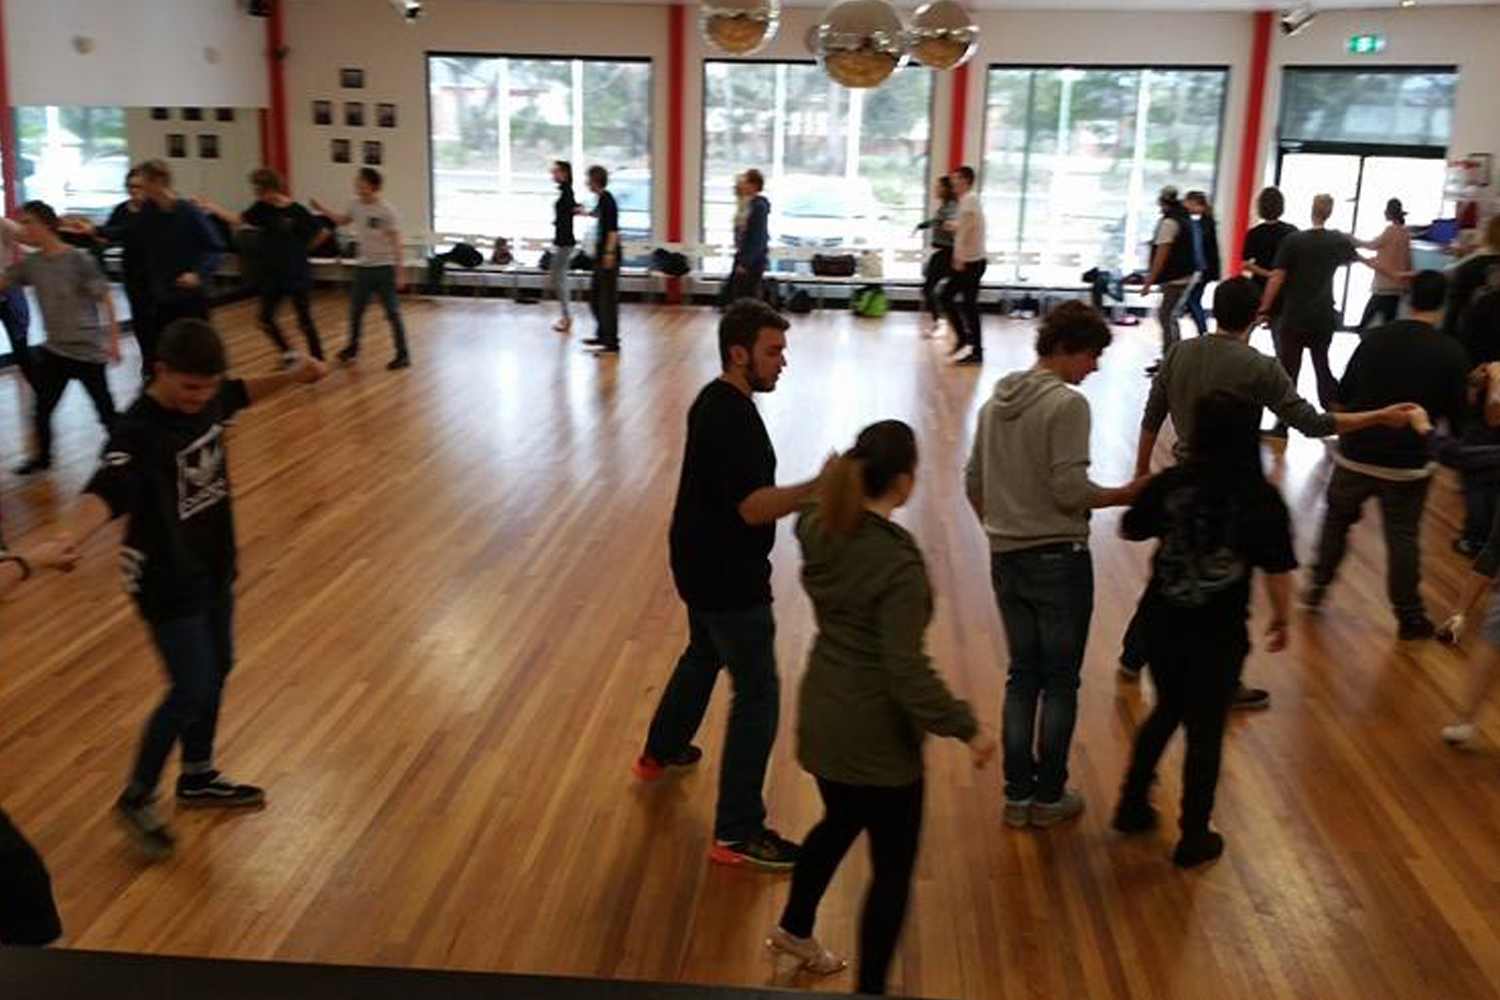 Adult learn to dance and social dance classes